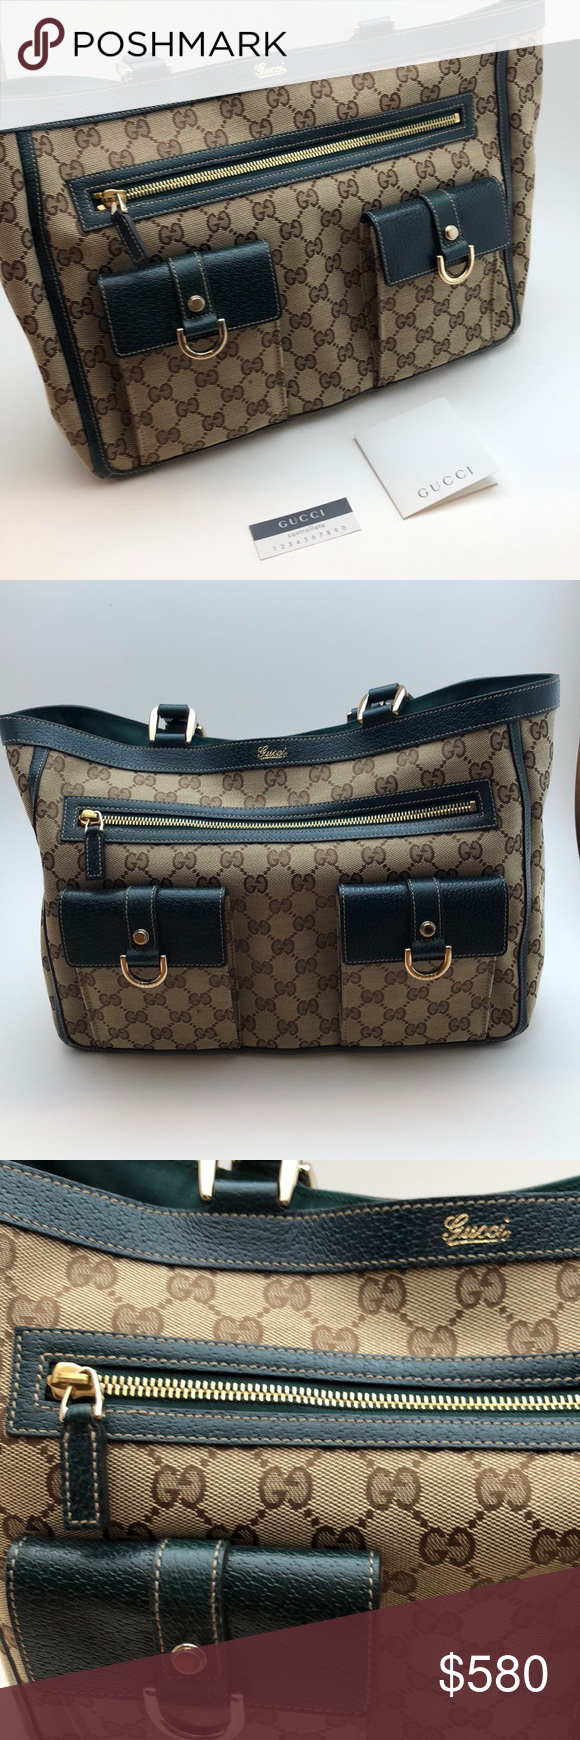 de14f2874d0 NEW Authentic Gucci Crystal Abbey Lg Pocket Tote New  Nieman Marcus tag  still attached. Perfect condition